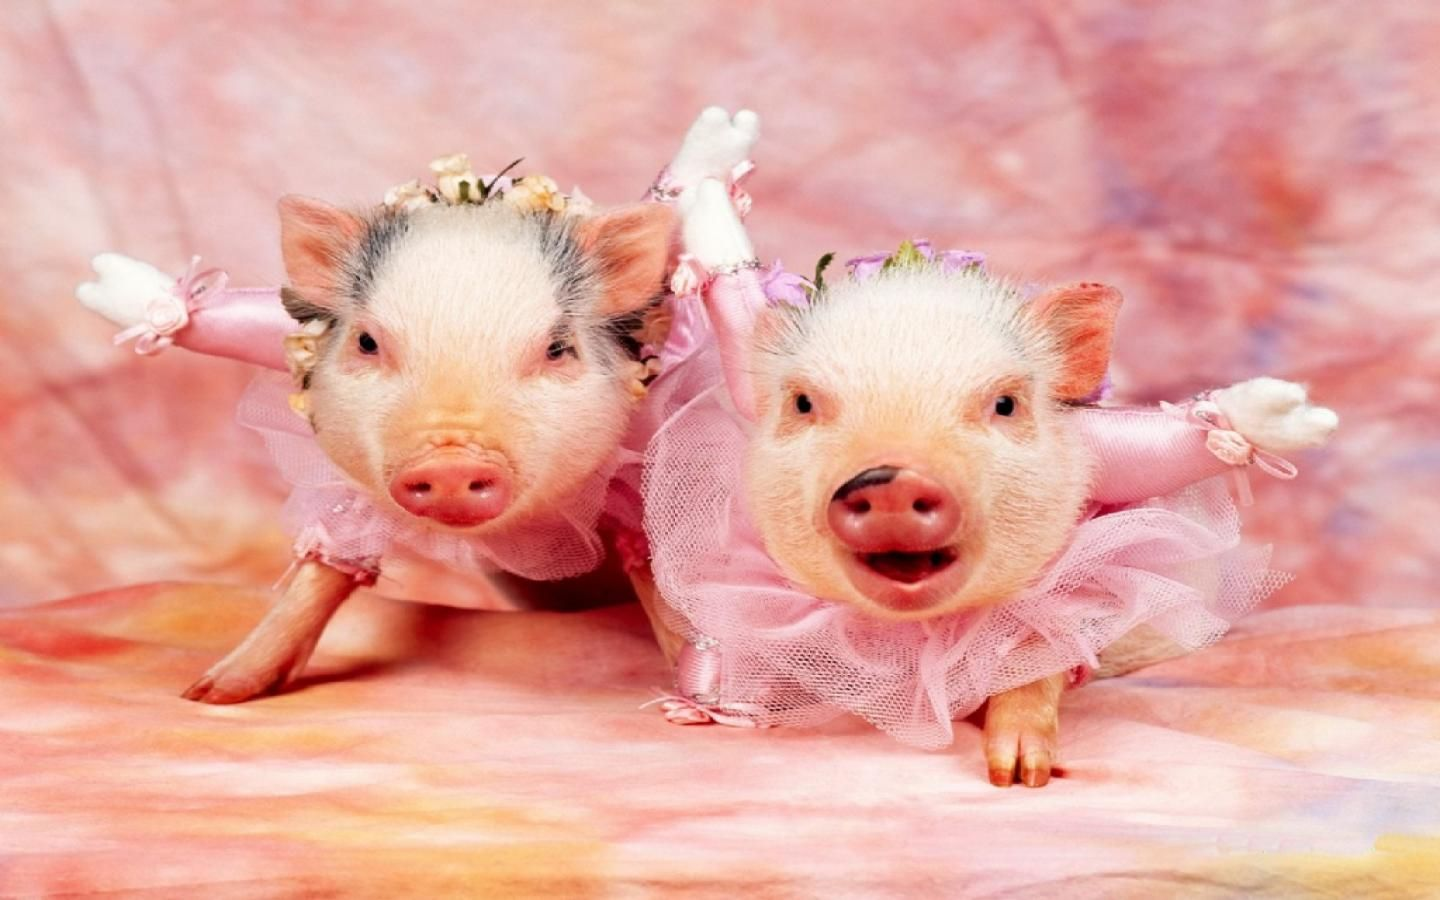 baby Pigs with flowers wallpaper | Real Pig Wallpaper 17571 Hd Wallpapers in Animals - Imagesci.com